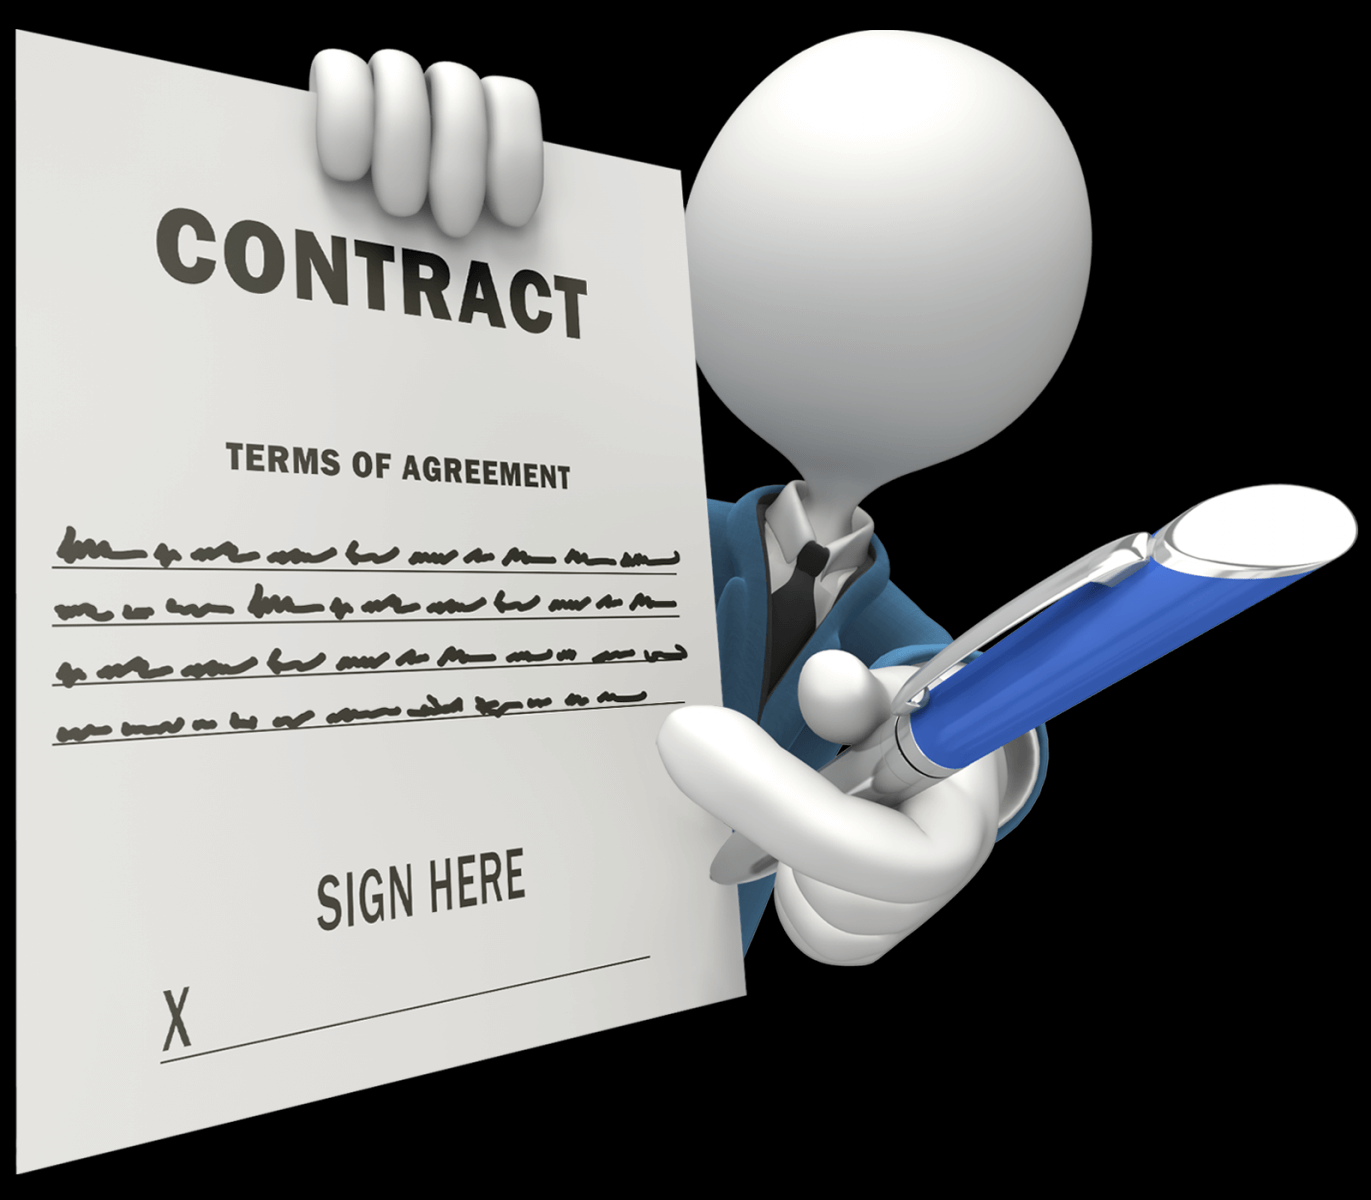 written contracts Contracts elements of a contract the requisite elements that must be established to demonstrate the formation of a legally binding contract are (1) offer (2) acceptance (3) consideration (4) mutuality of obligation (5) competency and capacity and, in certain circumstances, (6) a written instrument.